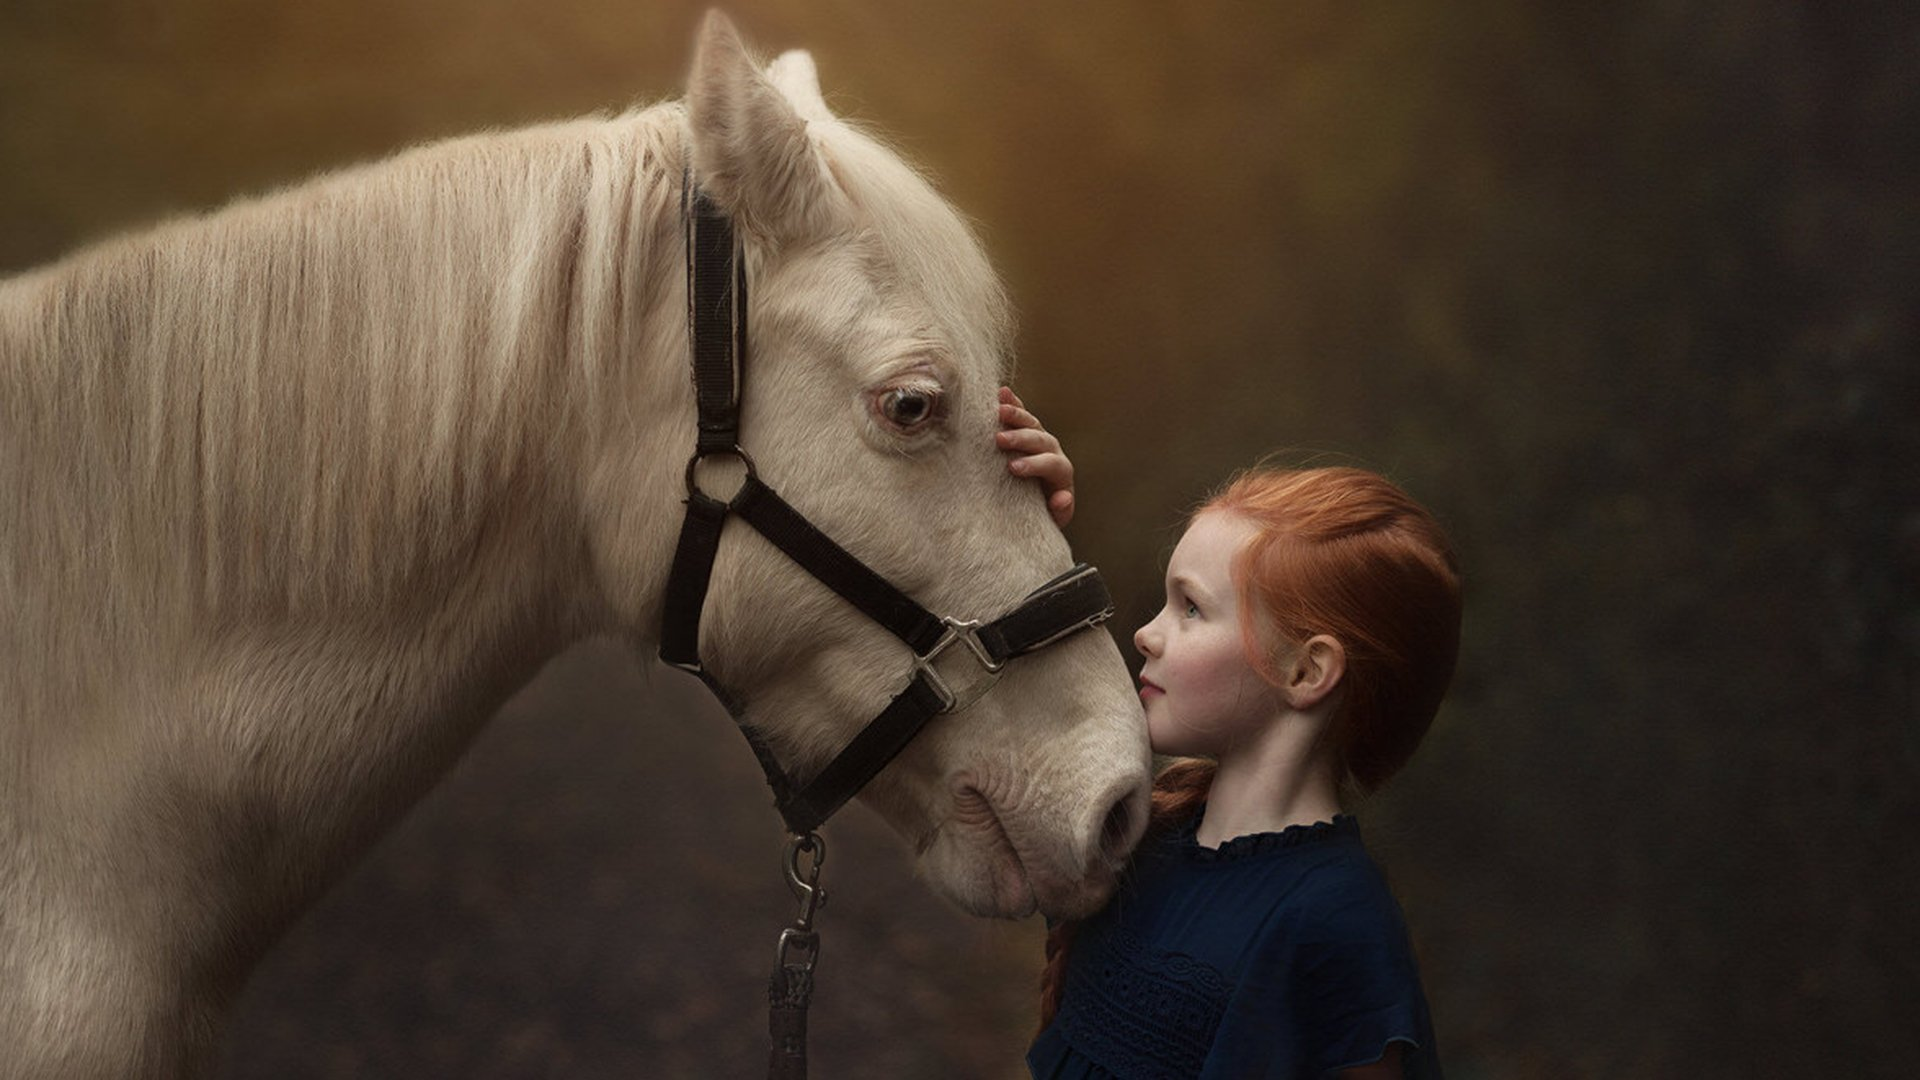 girl with red hair a white horse